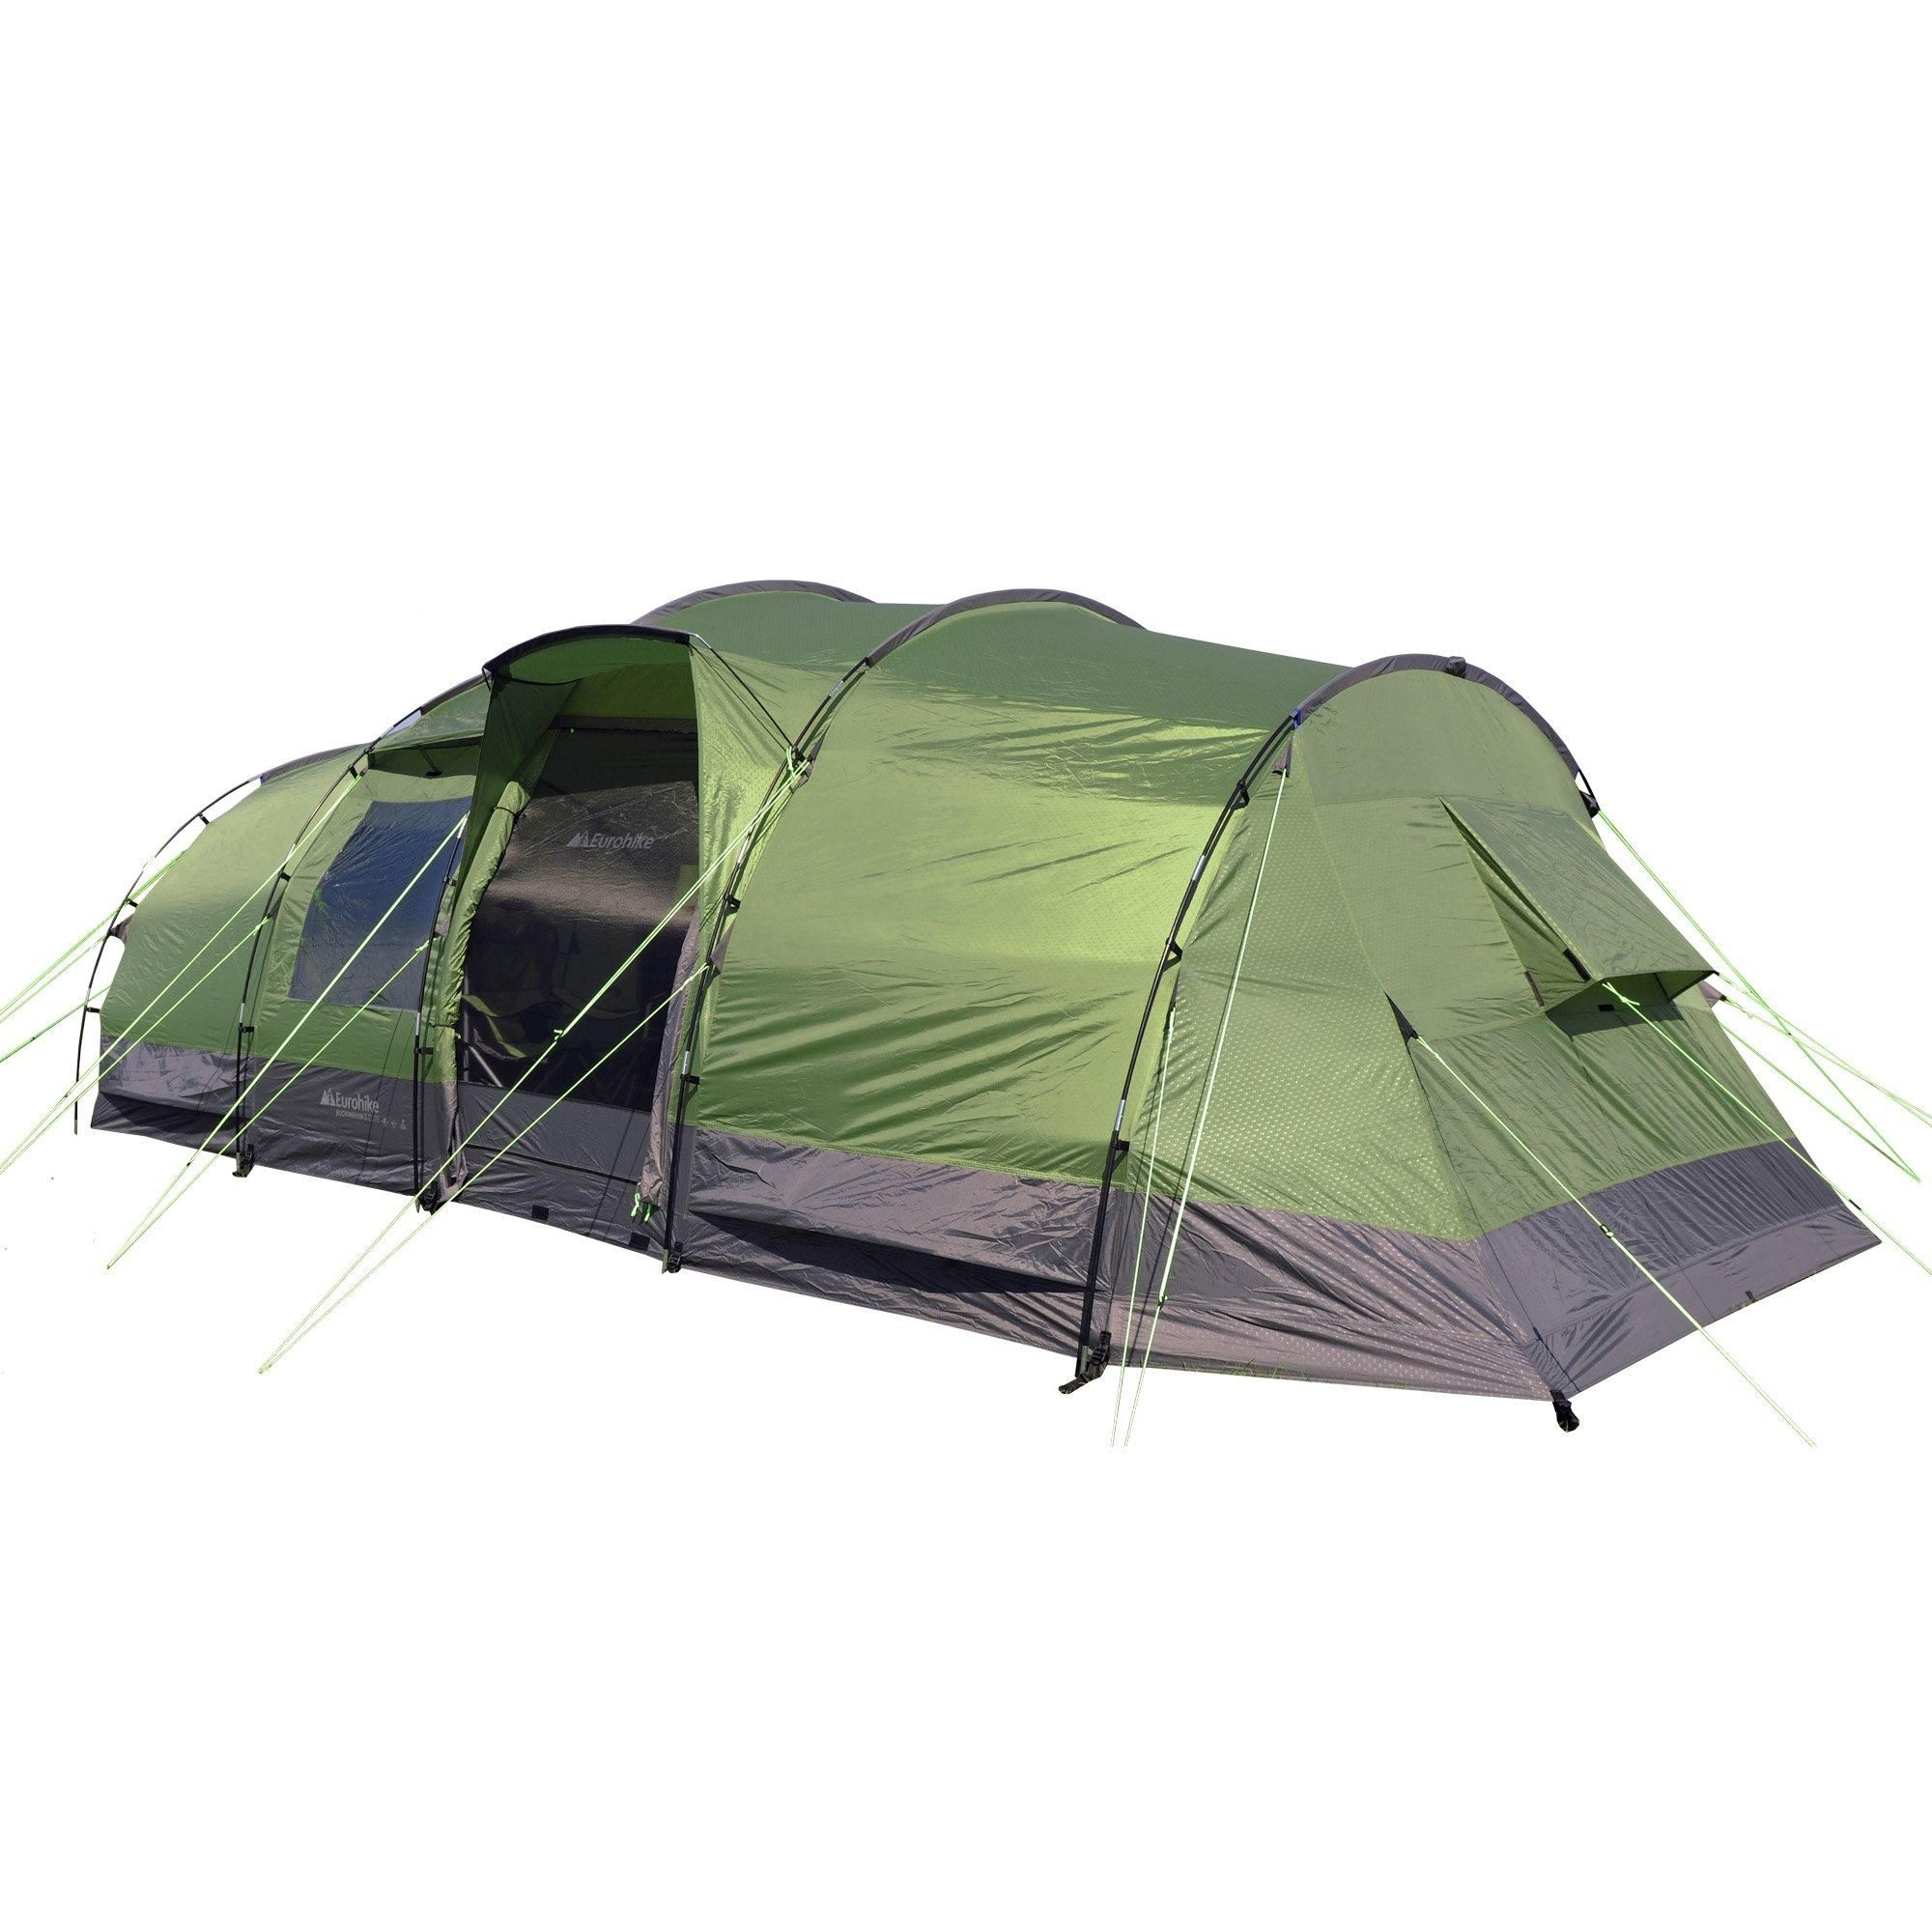 Eurohike Buckingham Elite 8 Man Family Tent - Blacks  sc 1 st  Pinterest & Eurohike Buckingham Elite 8 Man Family Tent - Blacks | Things Iu0027d ...